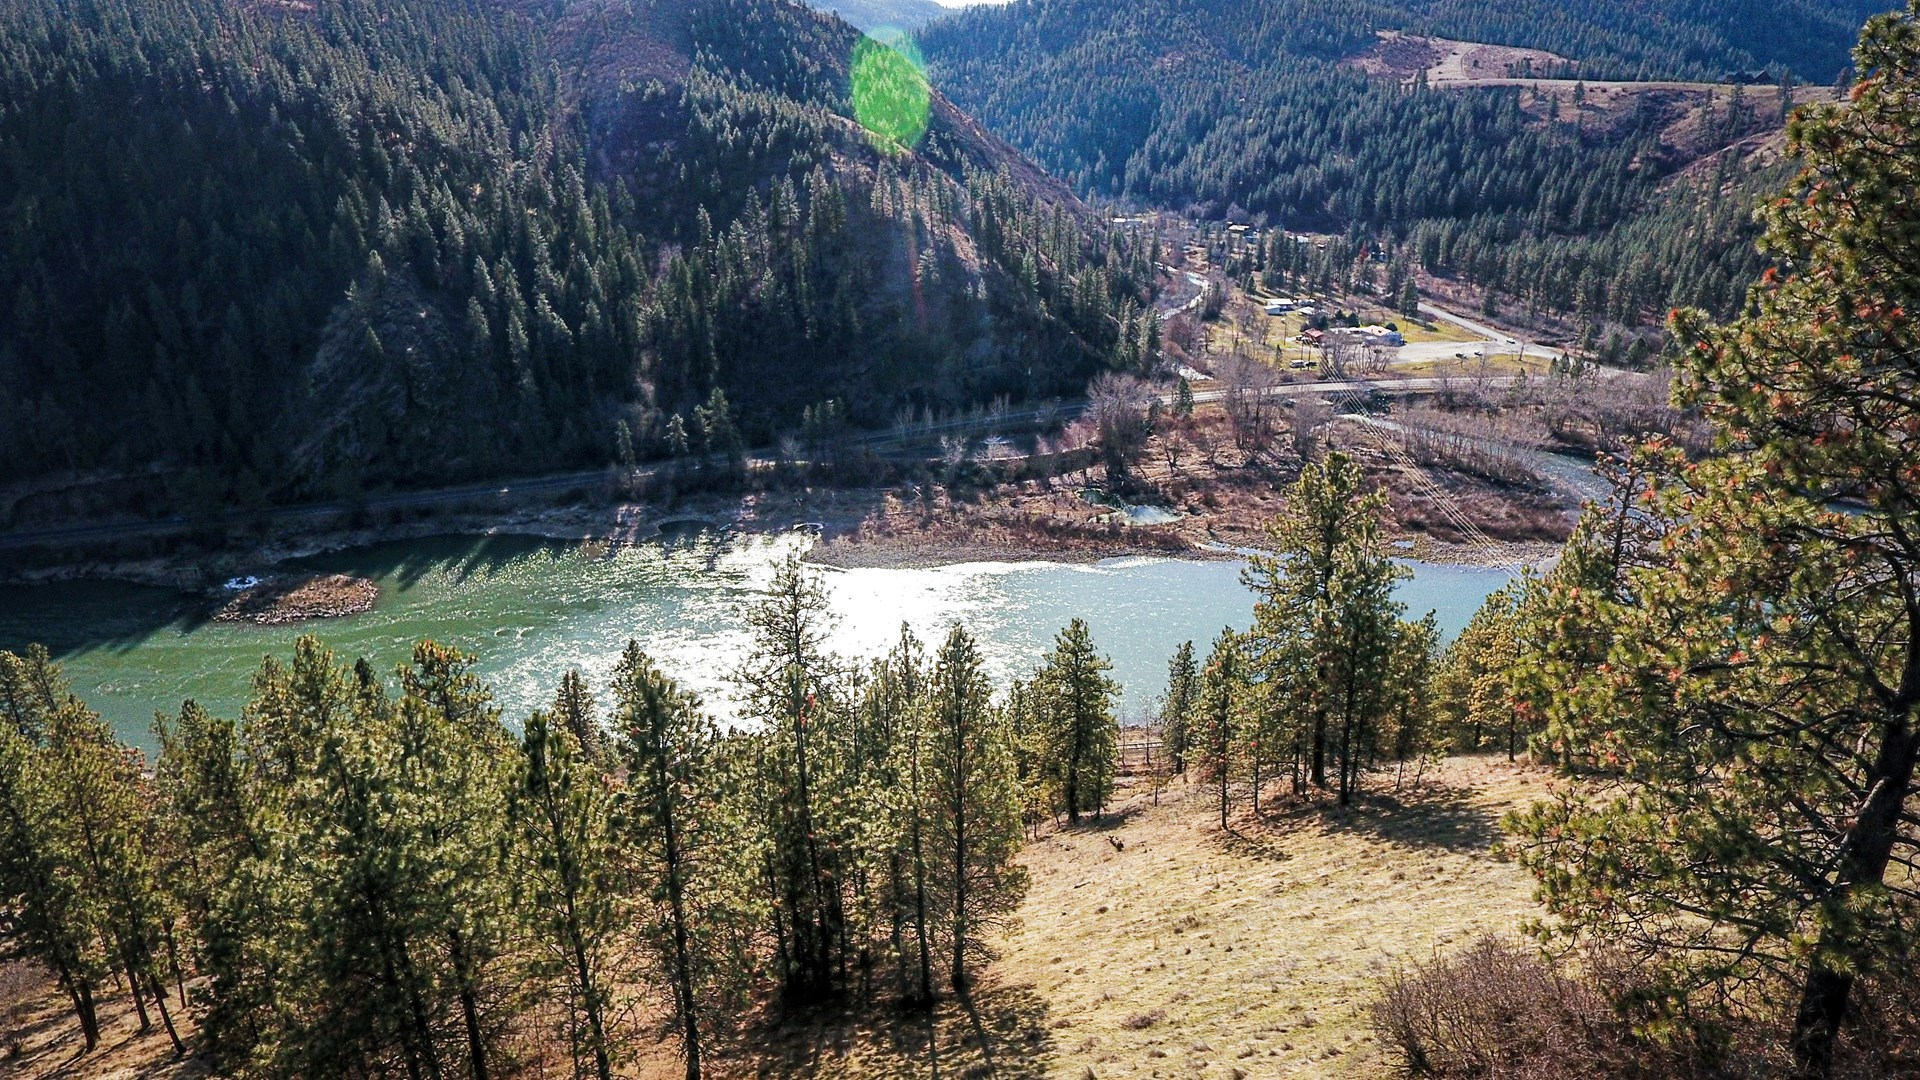 Recreational Lot along Clearwater River near Lenore, Idaho